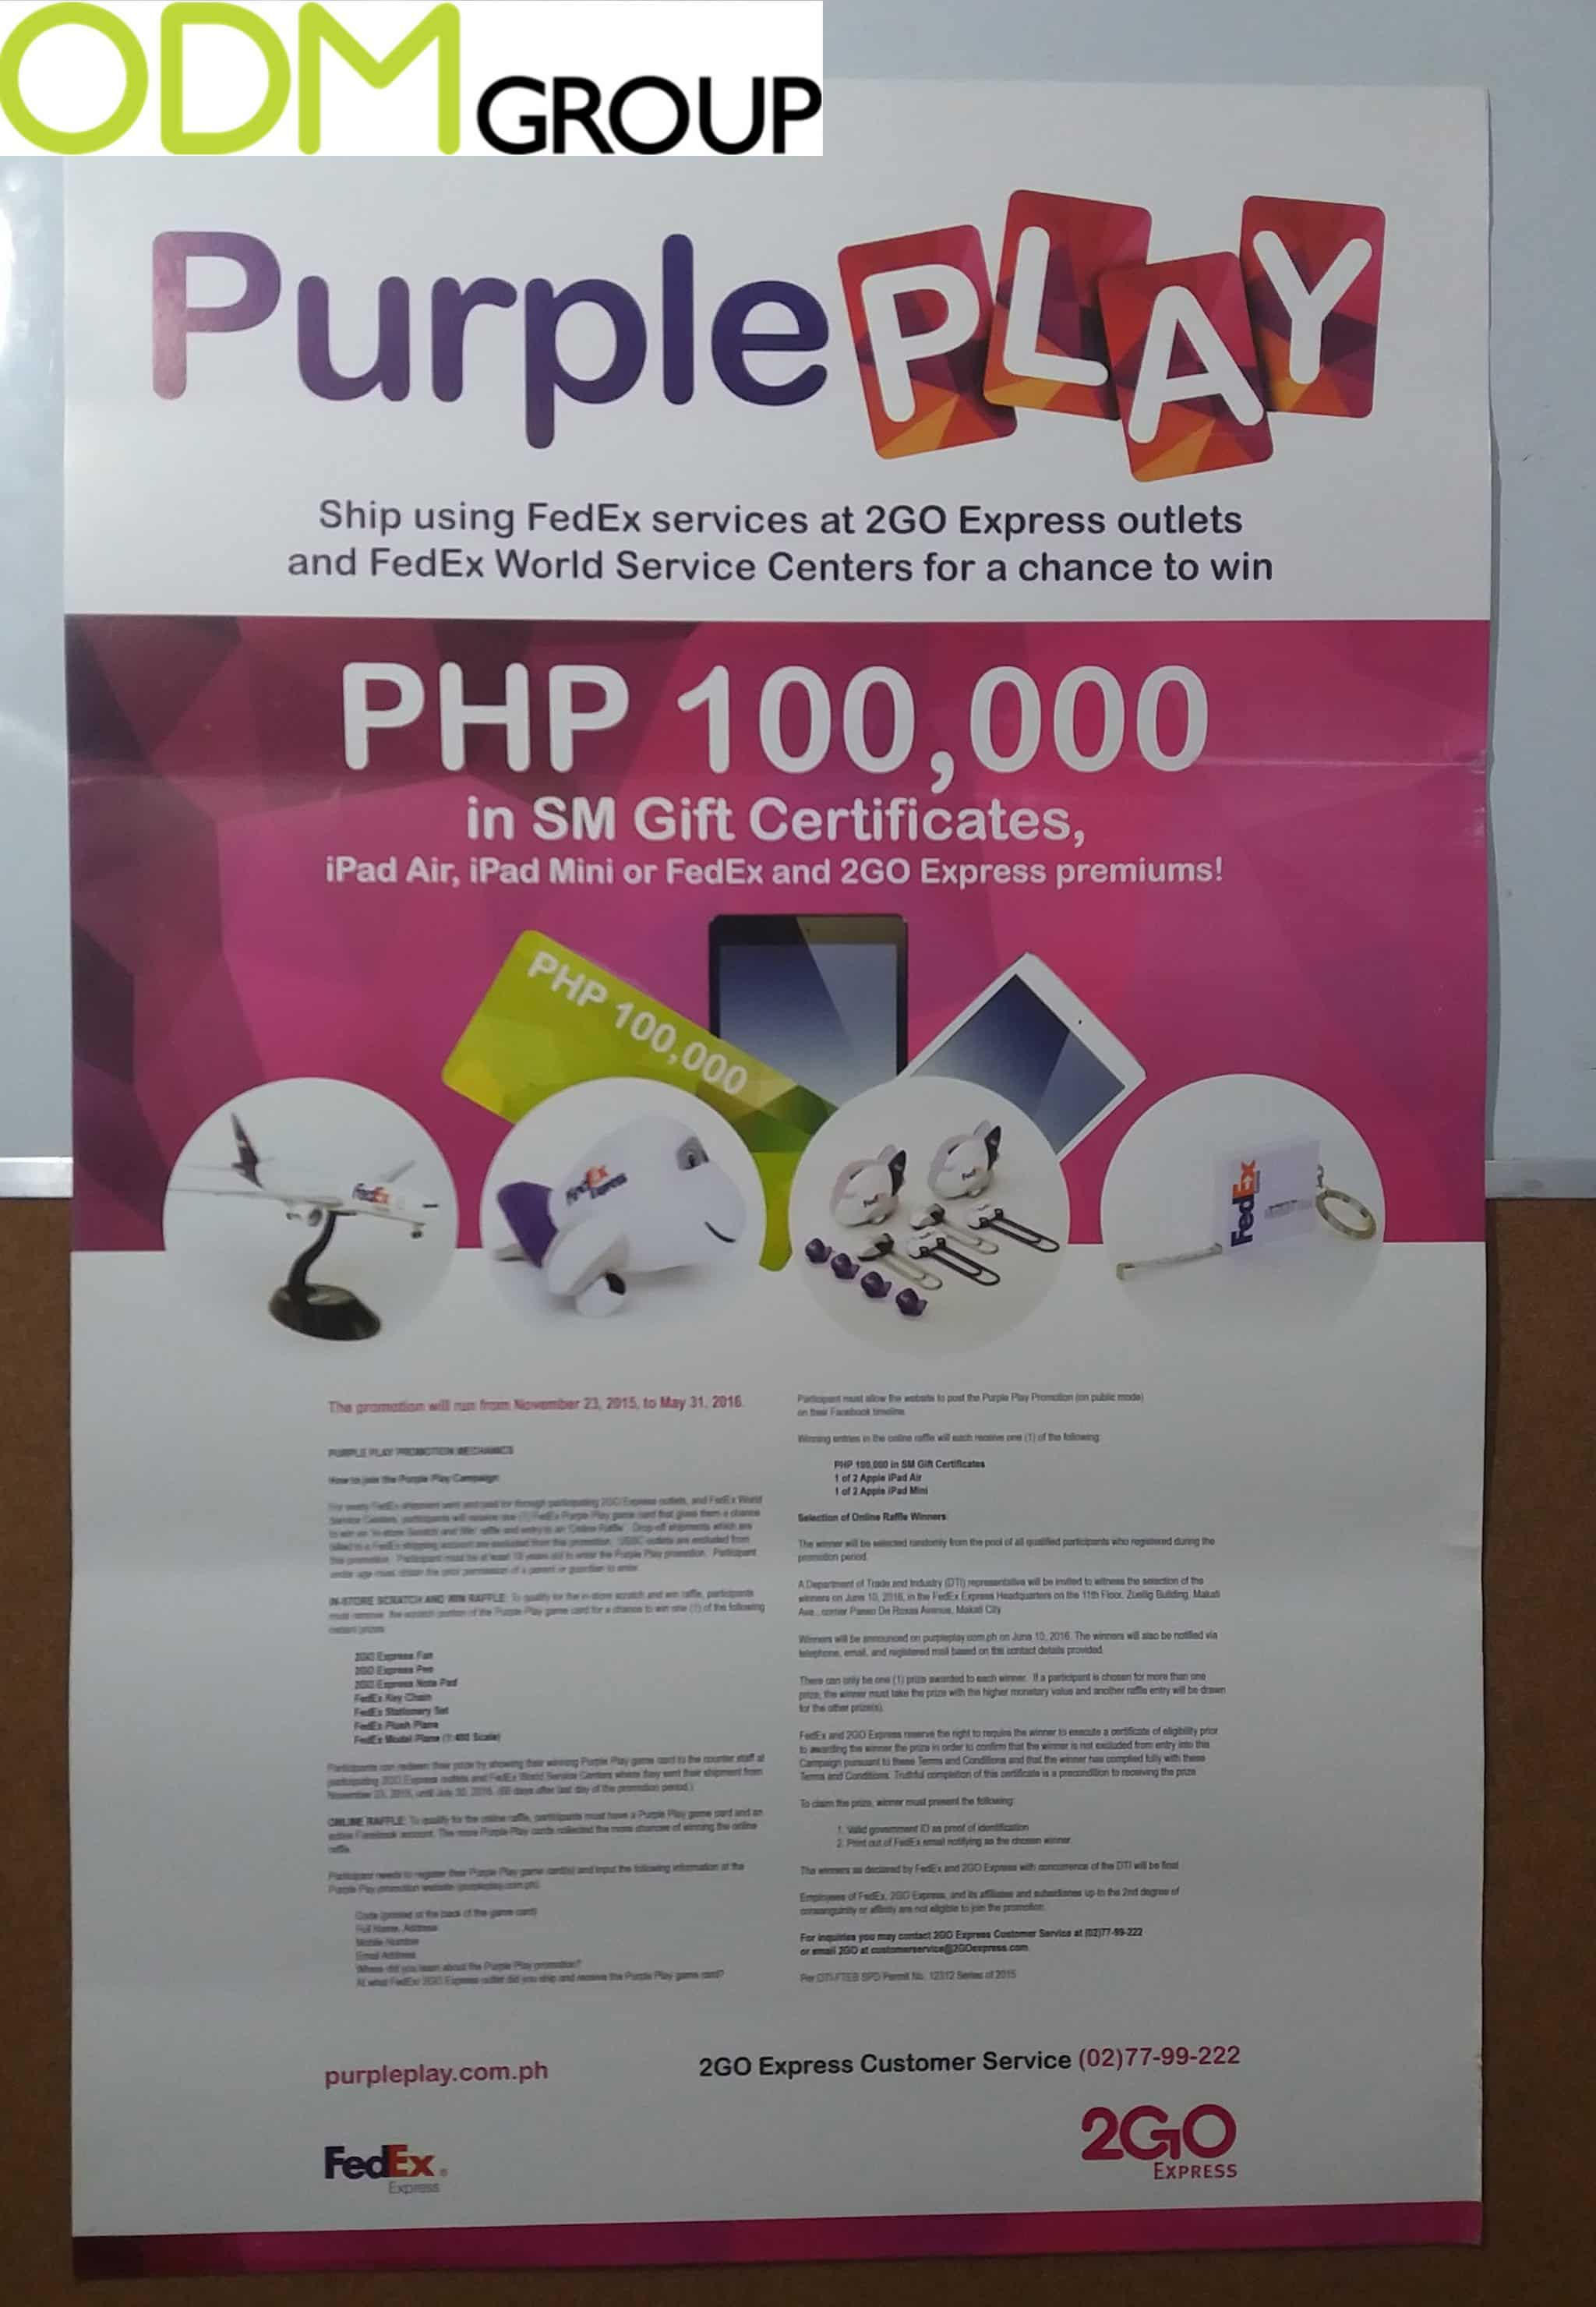 Promotional Campaign by FedEx - Lottery to Win a Free Gift